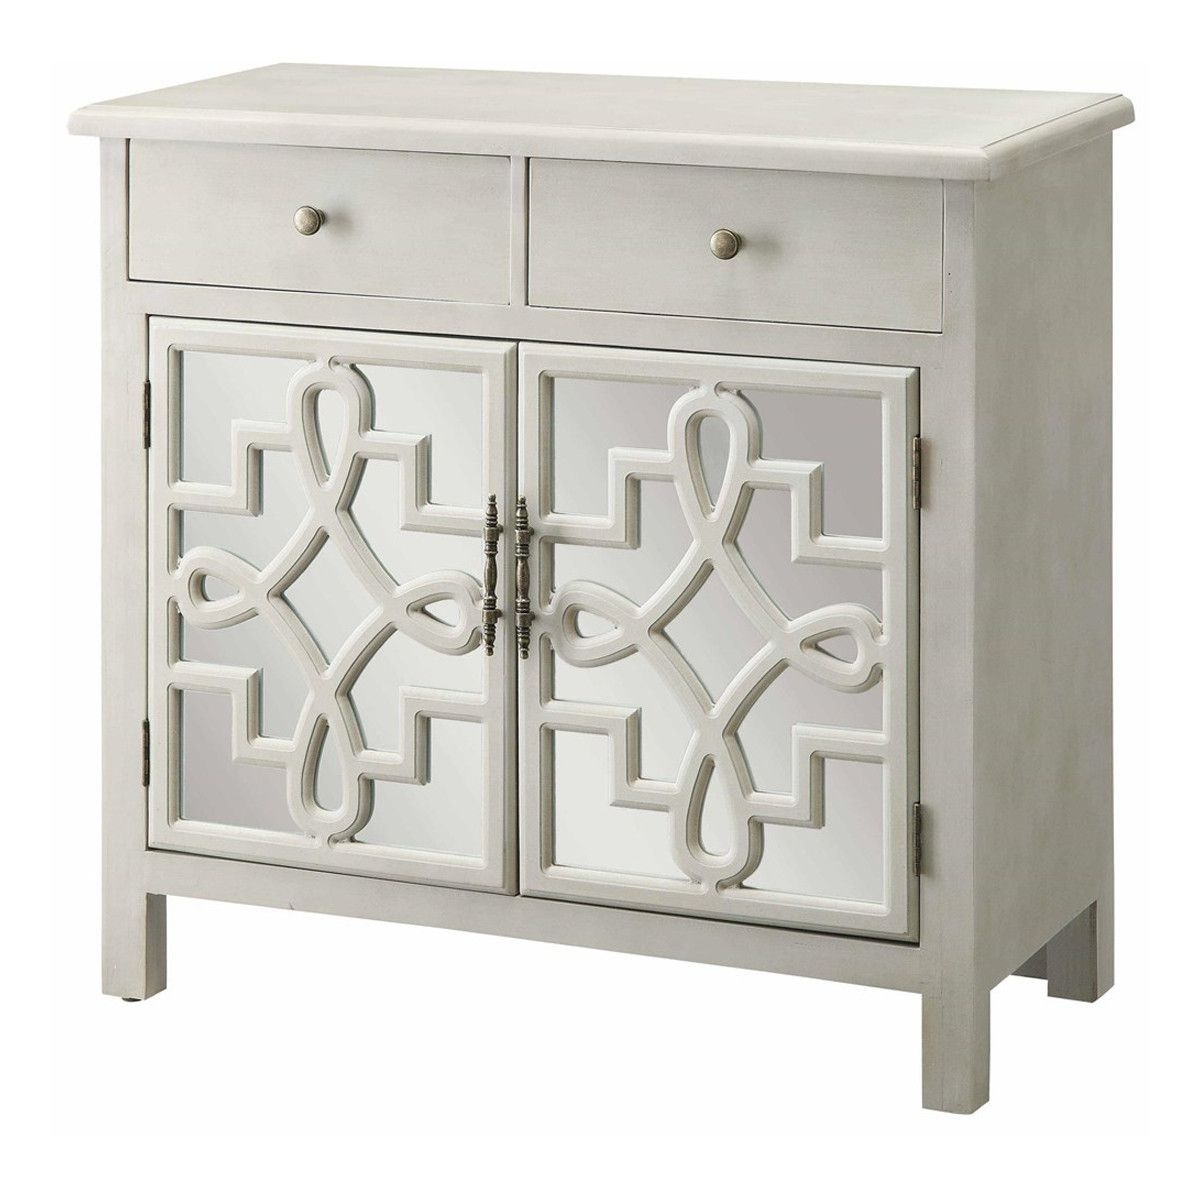 Coventry 2 Door Antique White And Mirrored Cabinet | Home Intended For Newest Aged Mirrored 2 Door Sideboards (#9 of 20)